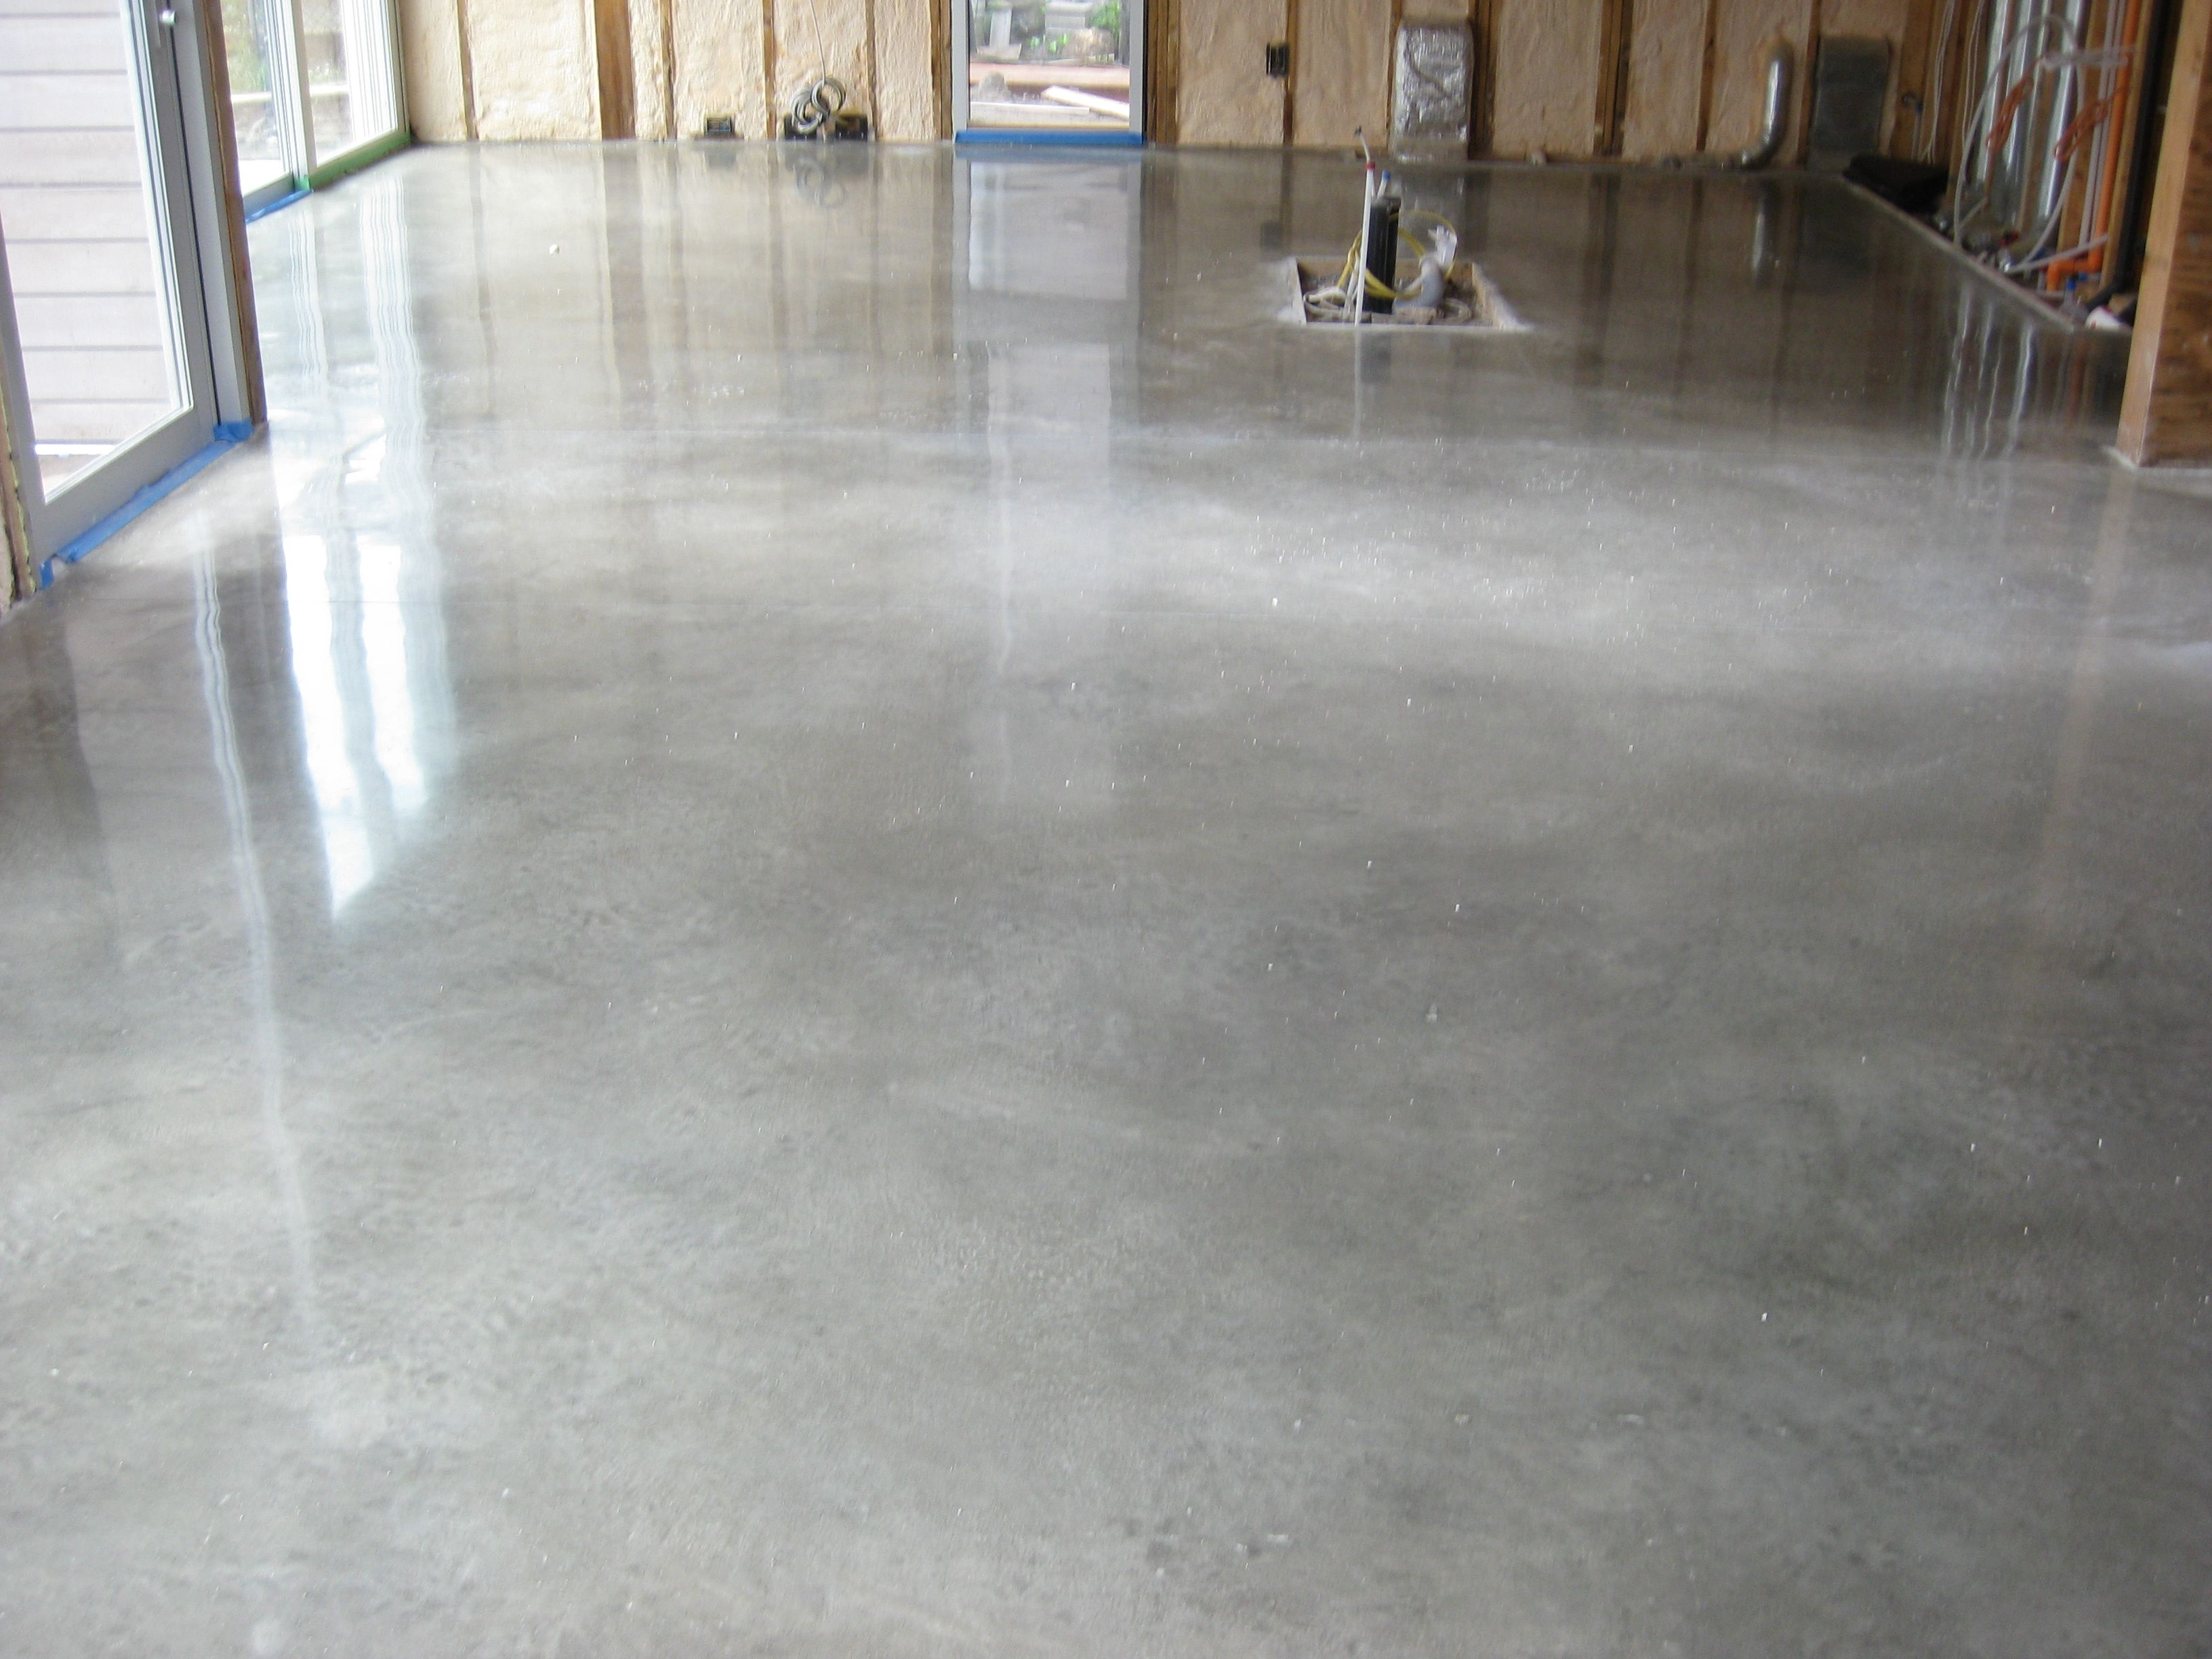 polished concrete floor almost a must in warehouse conversions description from pinterestcom